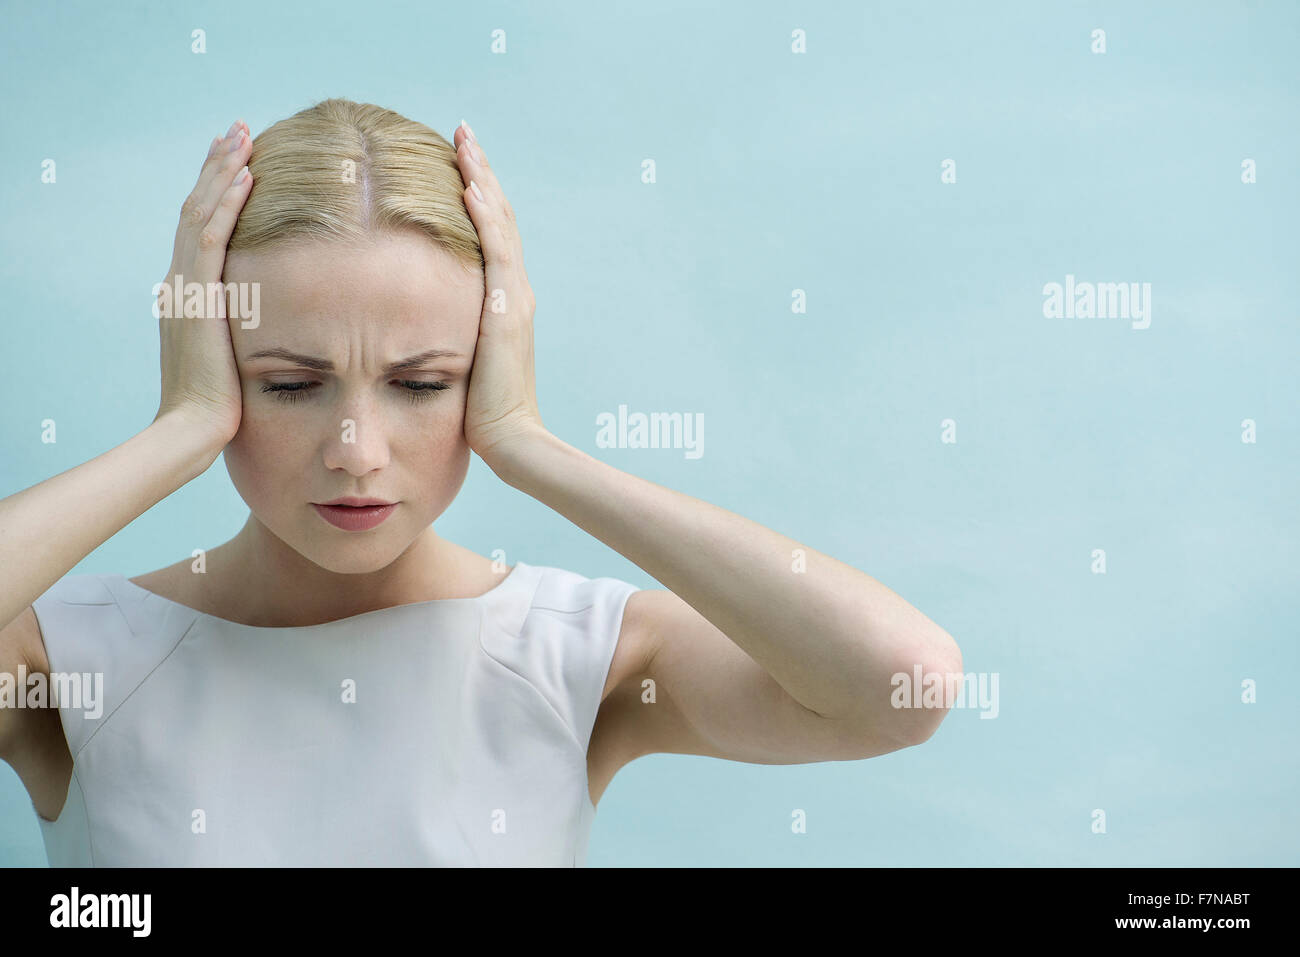 Woman holding hands over ears, looking down with furrowed brow Stock Photo